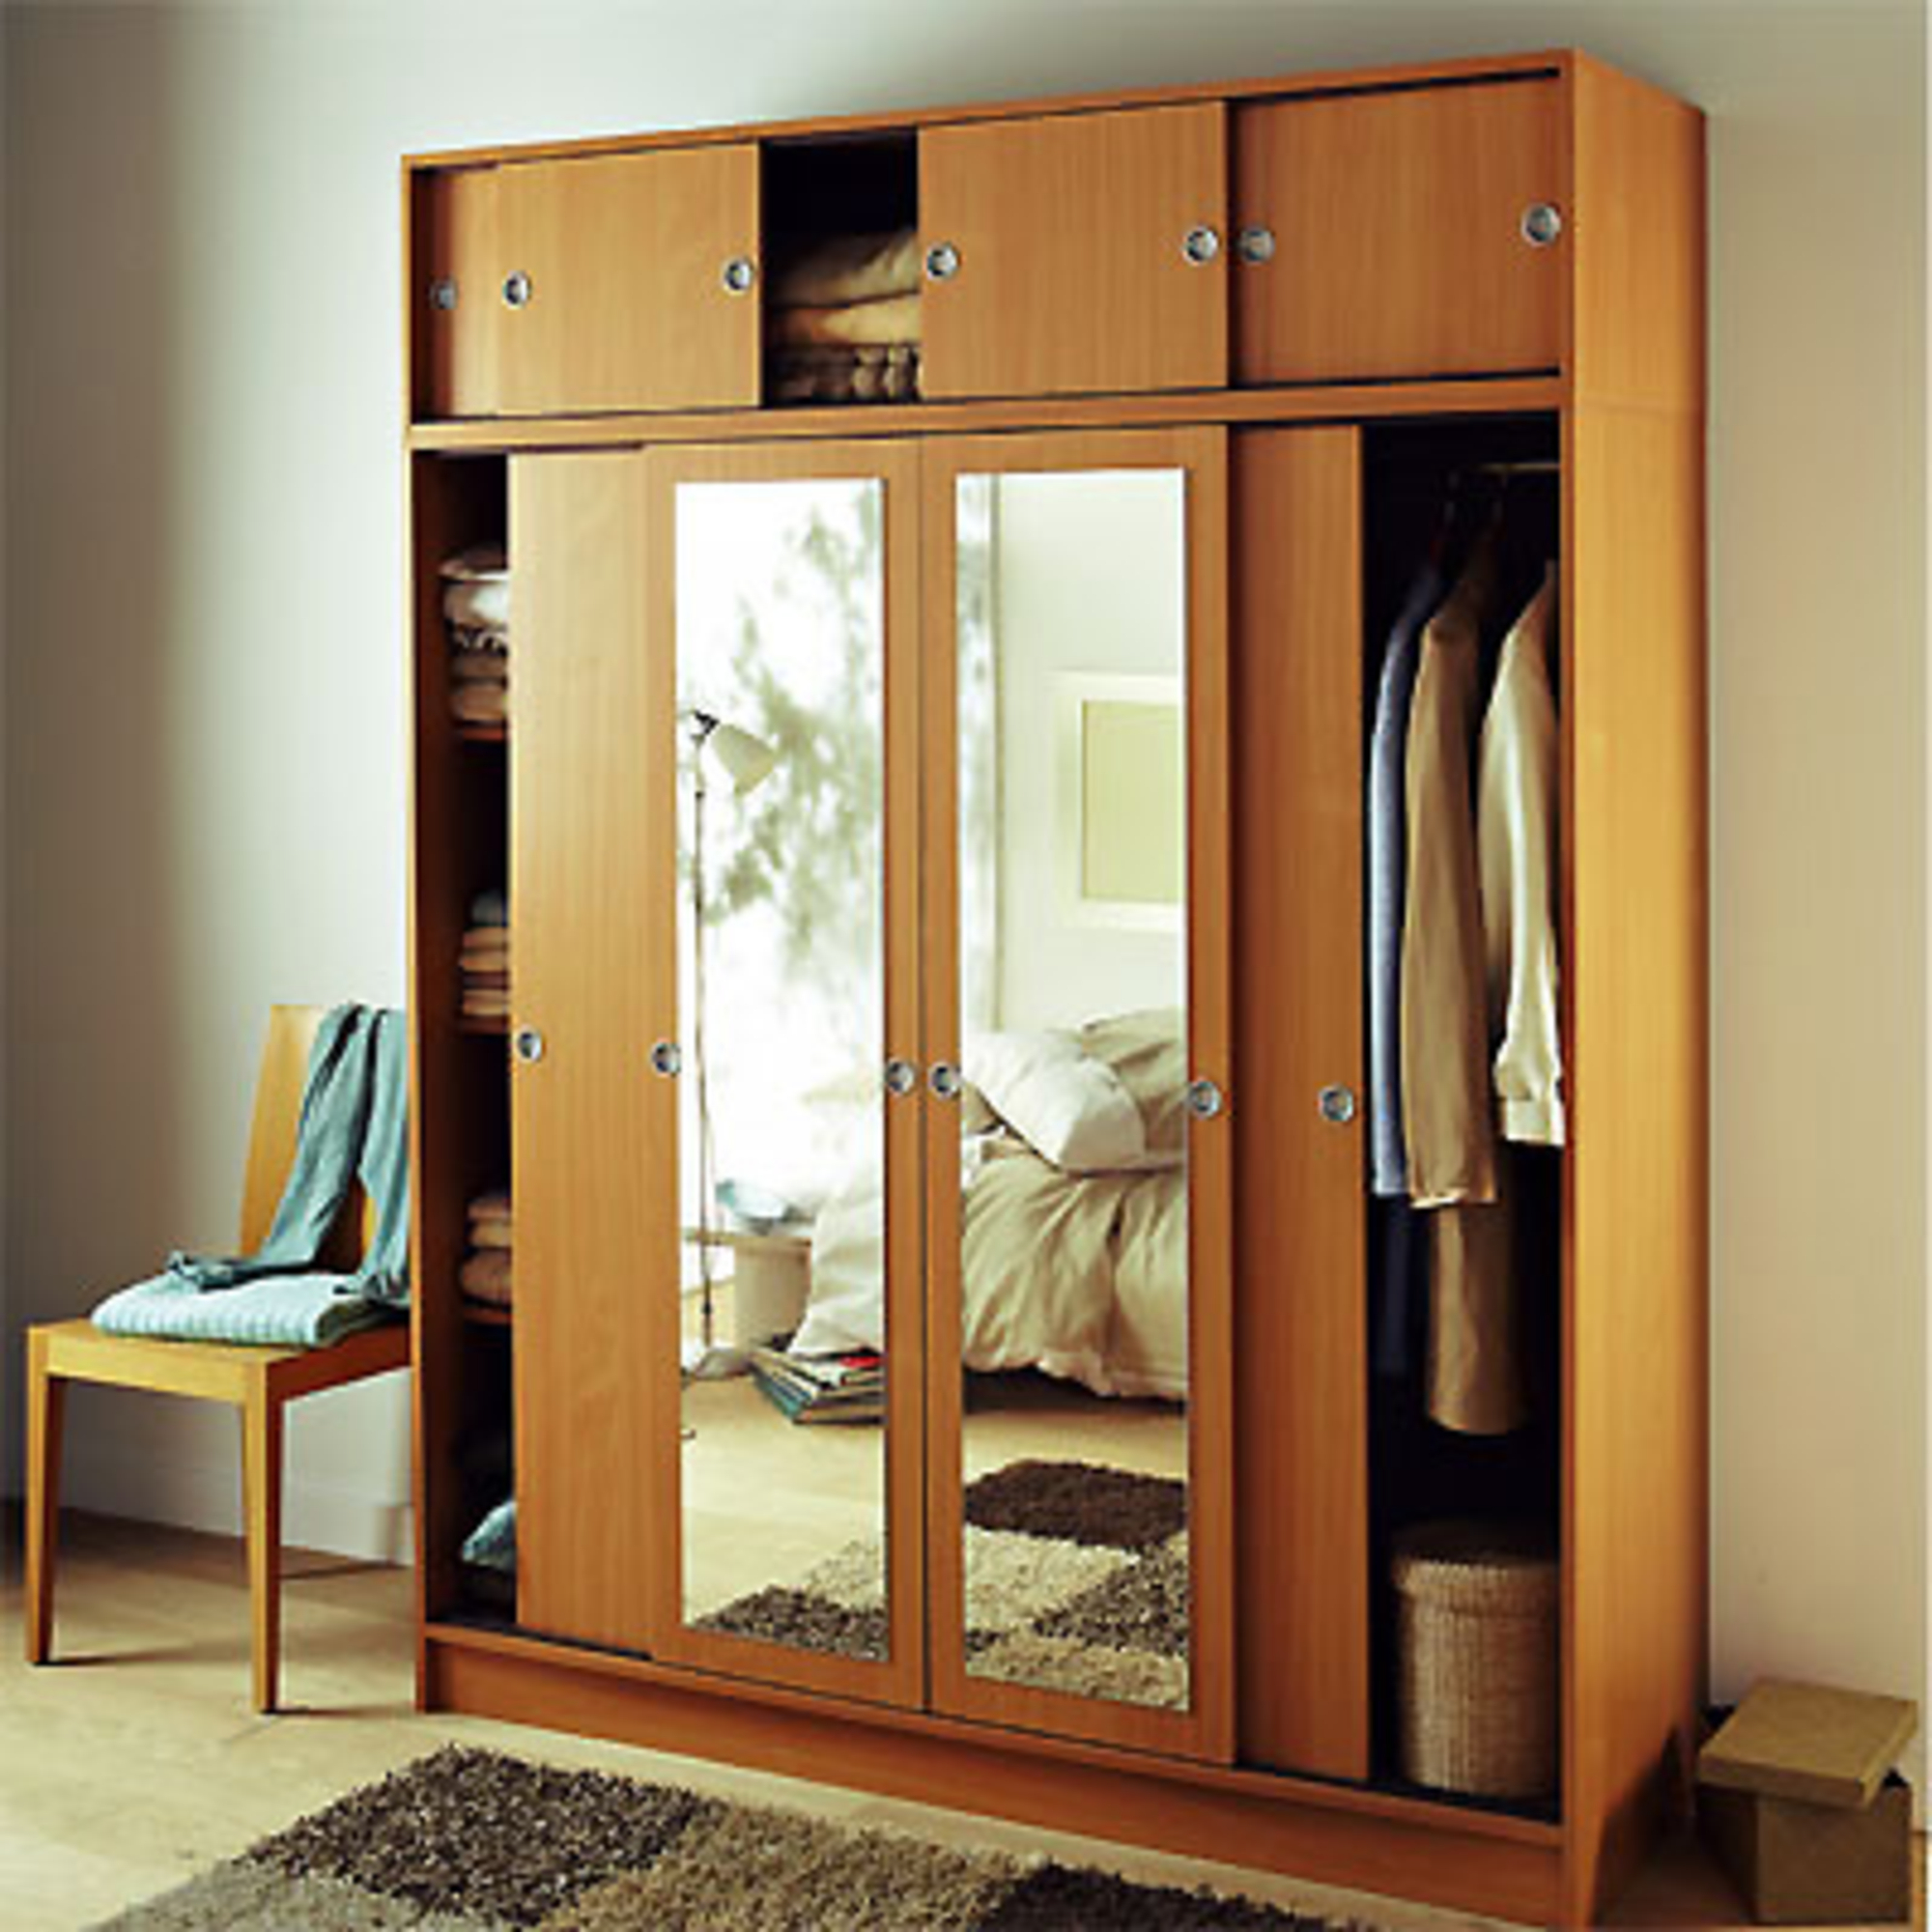 armoire avec porte coulissante images. Black Bedroom Furniture Sets. Home Design Ideas